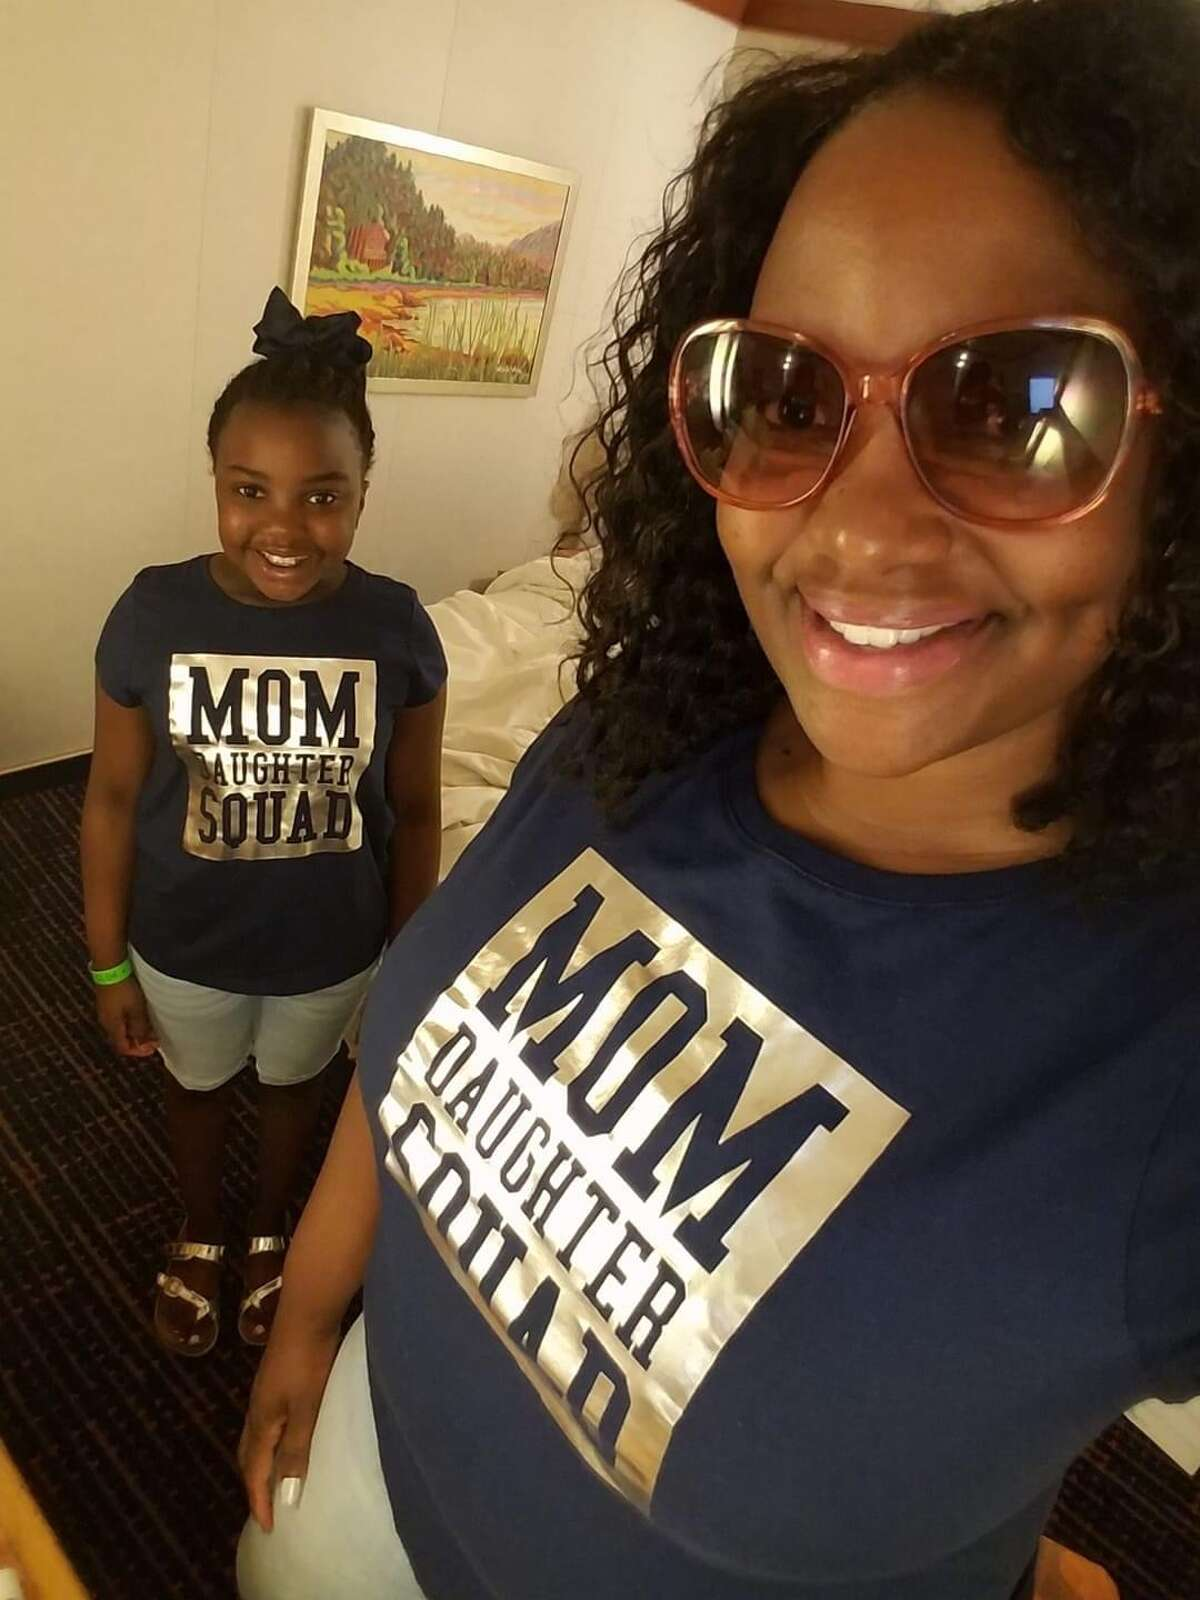 Texas traveling nurse Charla Allen is now on a mission to help others, with her nine-year-old daughter by her side, after the two battled and defeat COVID-19 together.